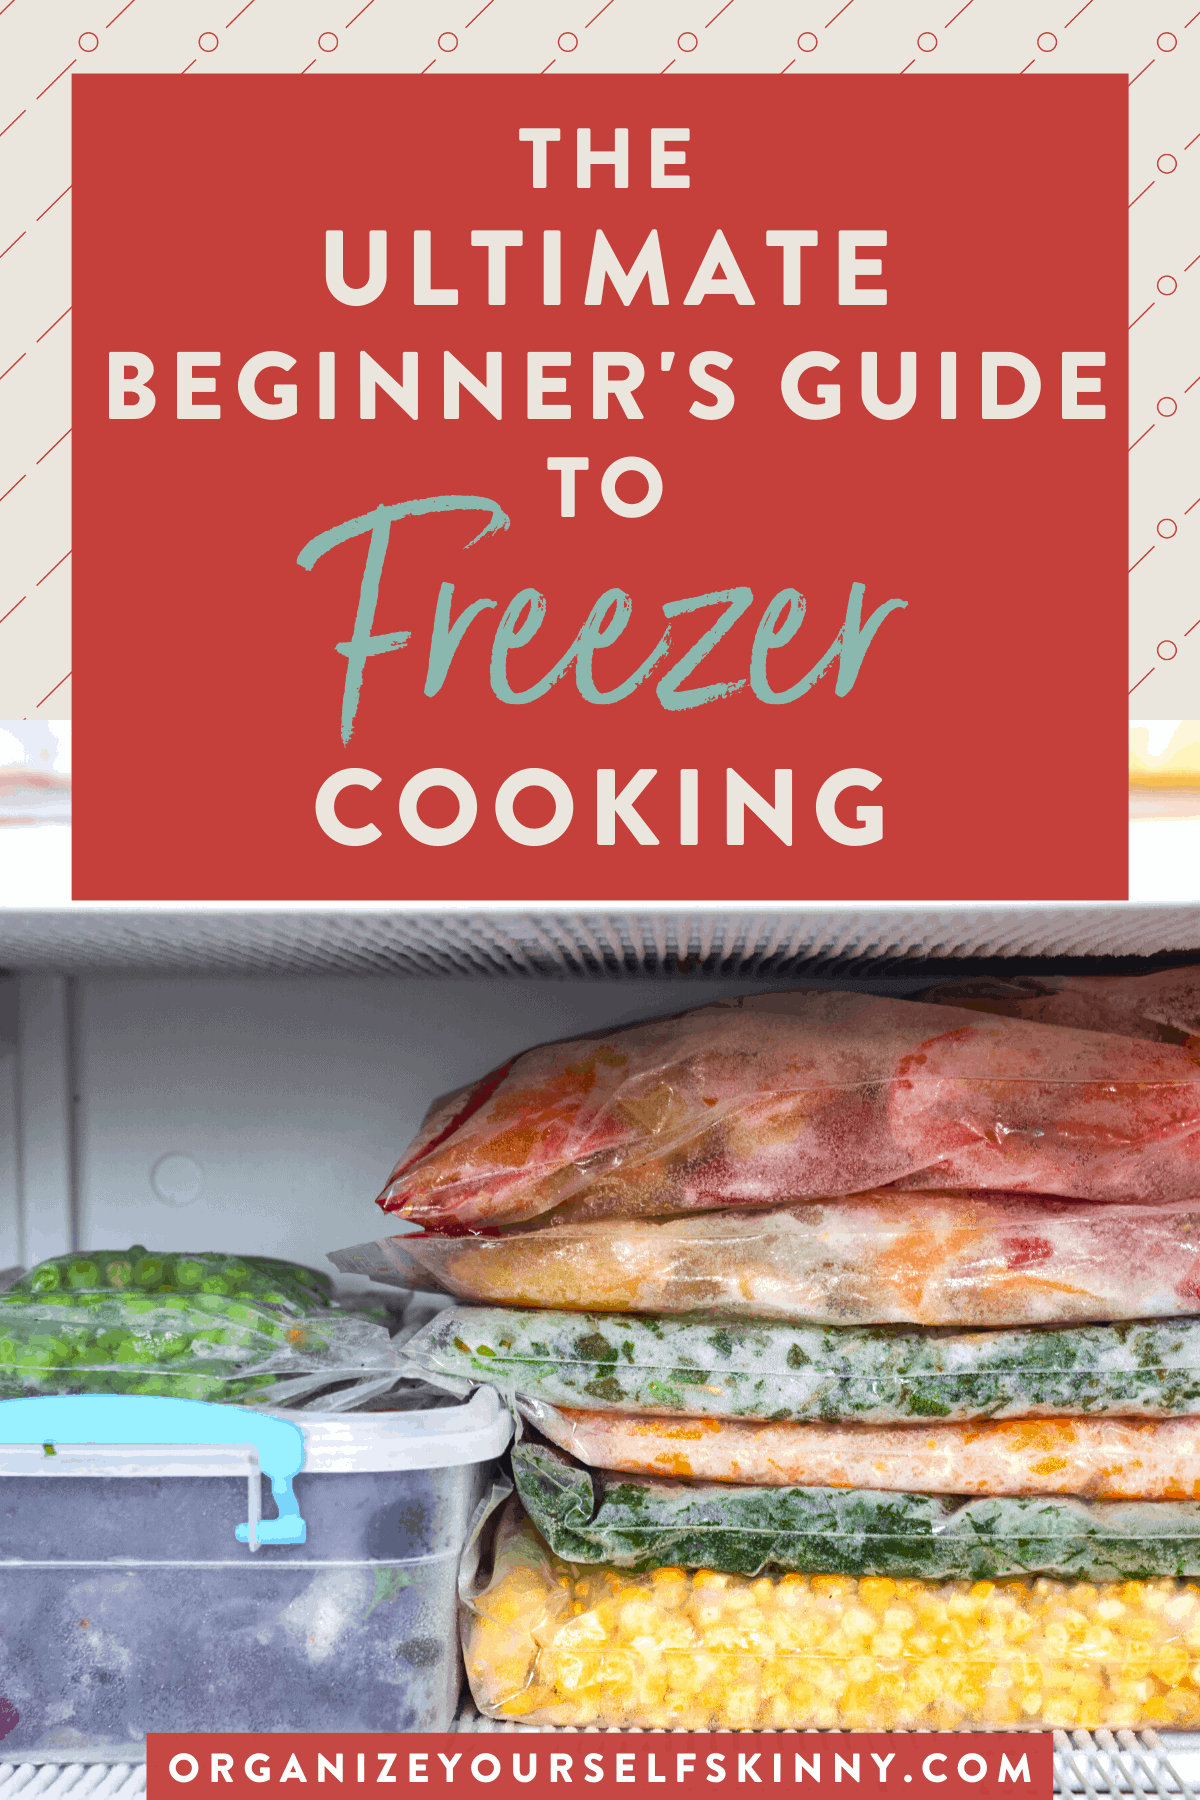 the-ultimate-beginner's-guide-to-freezer-cooking